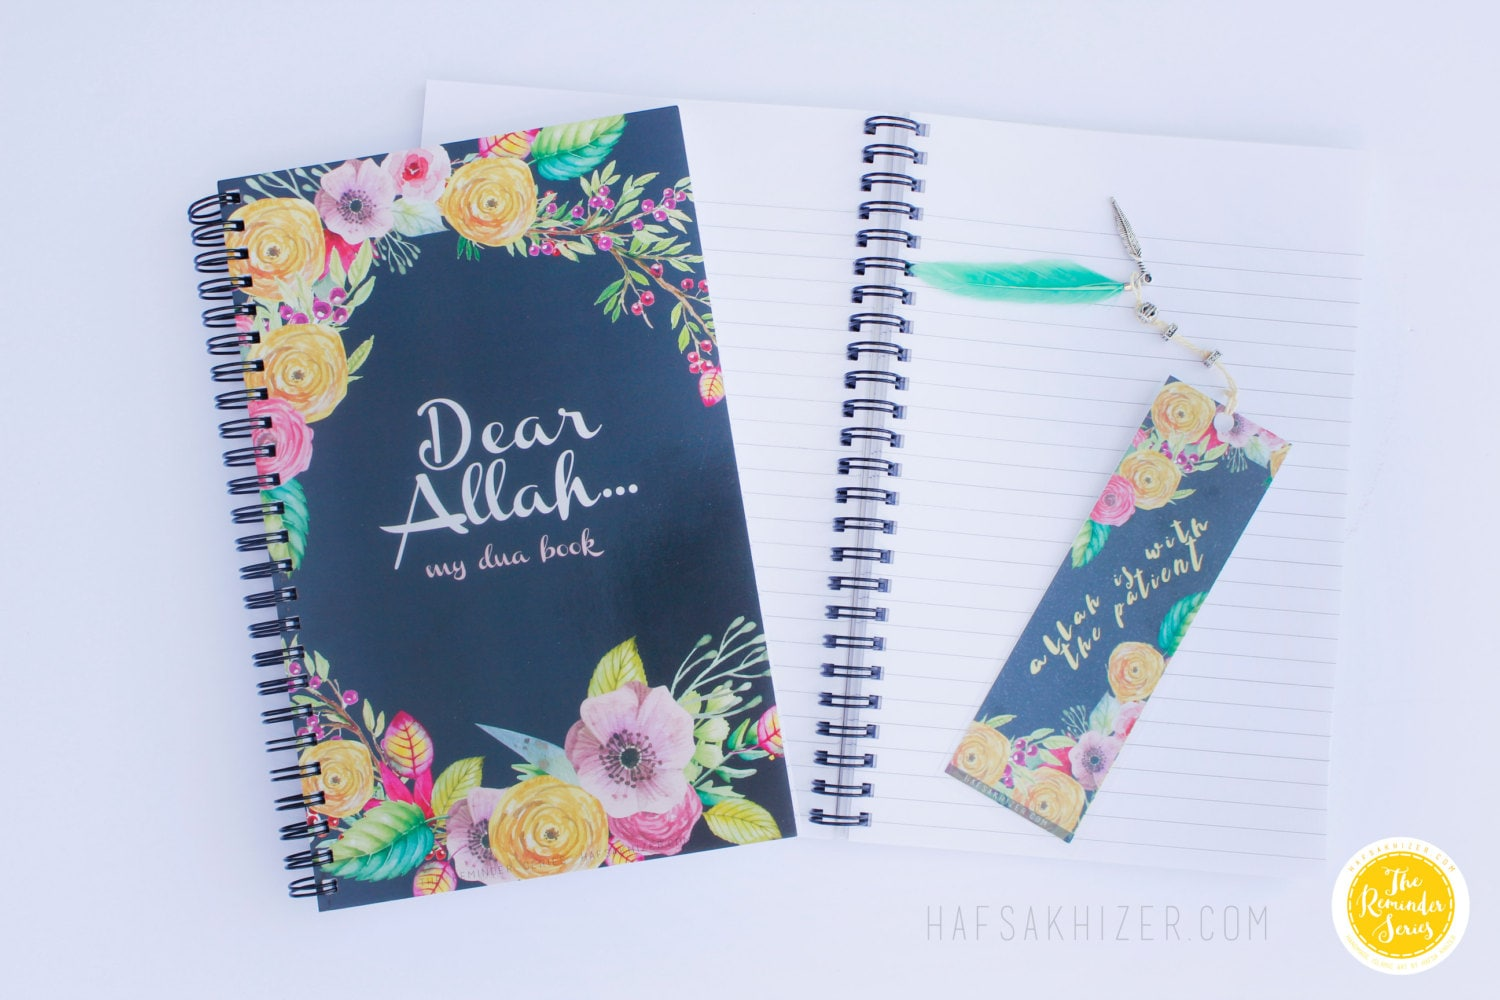 Muslim Wedding Gift Ideas: Islamic Journal Islamic Notebook Dua Journal Dua Book Dear